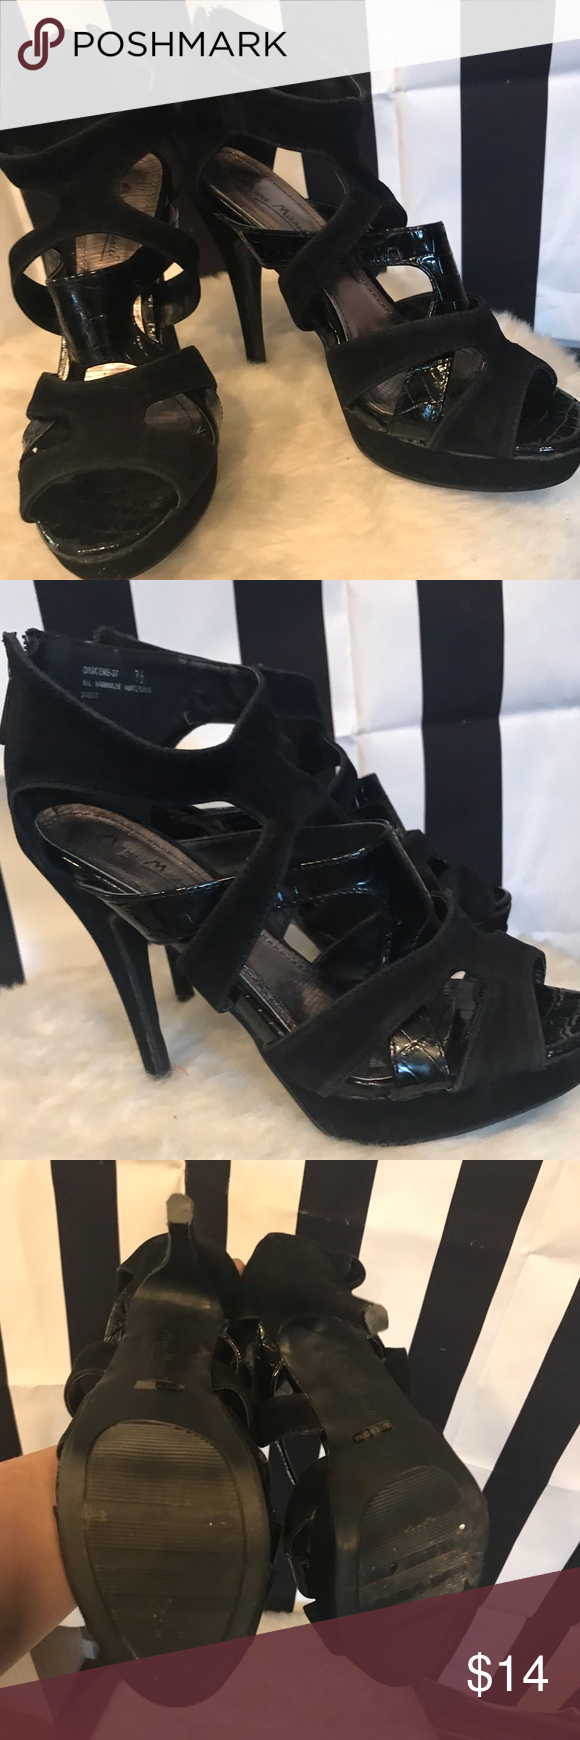 45a5b792108e27 Ann Michelle heels Pre-owned black velvet patent leather caged heels. Silver  insole